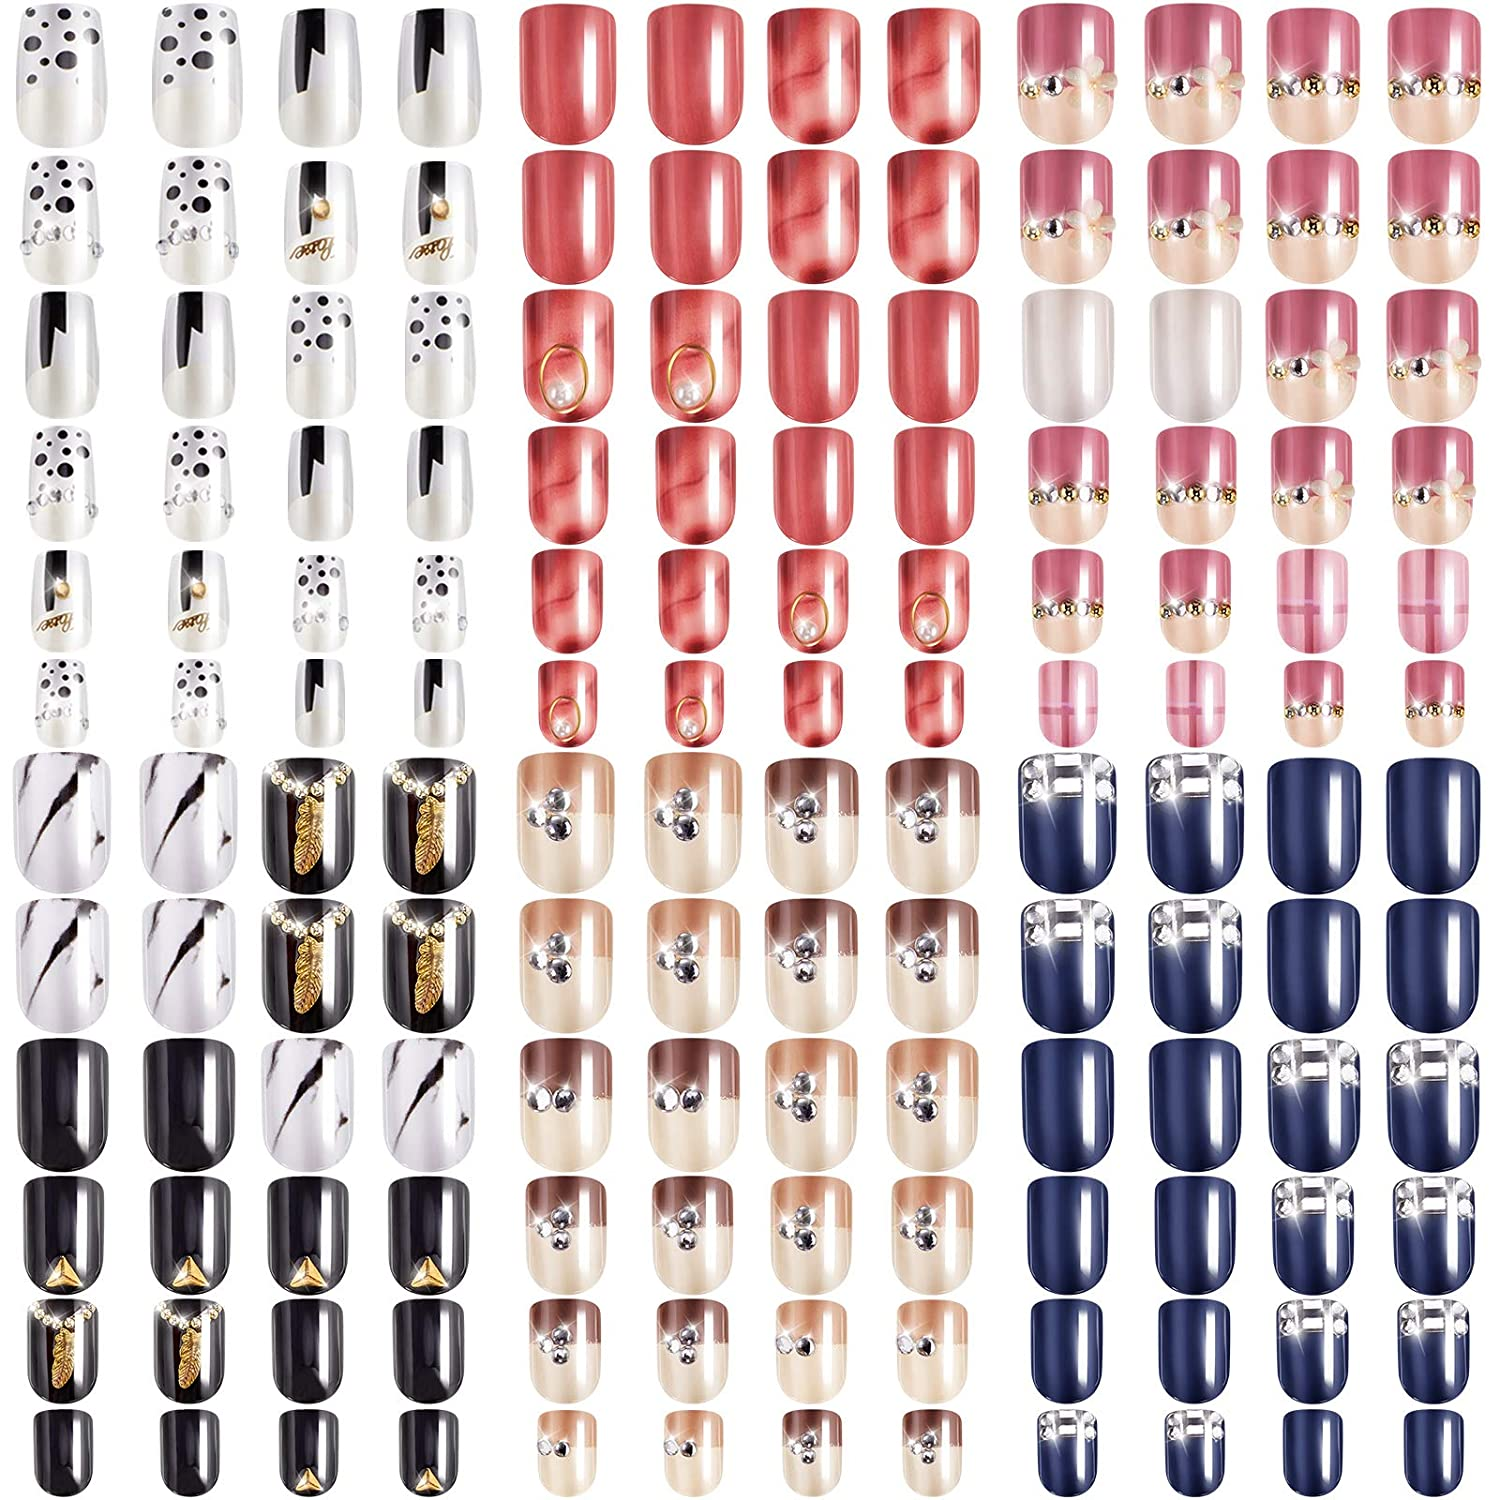 144 Pieces 6 Boxes Short overseas Square with on False Nails Minneapolis Mall Press Rhines